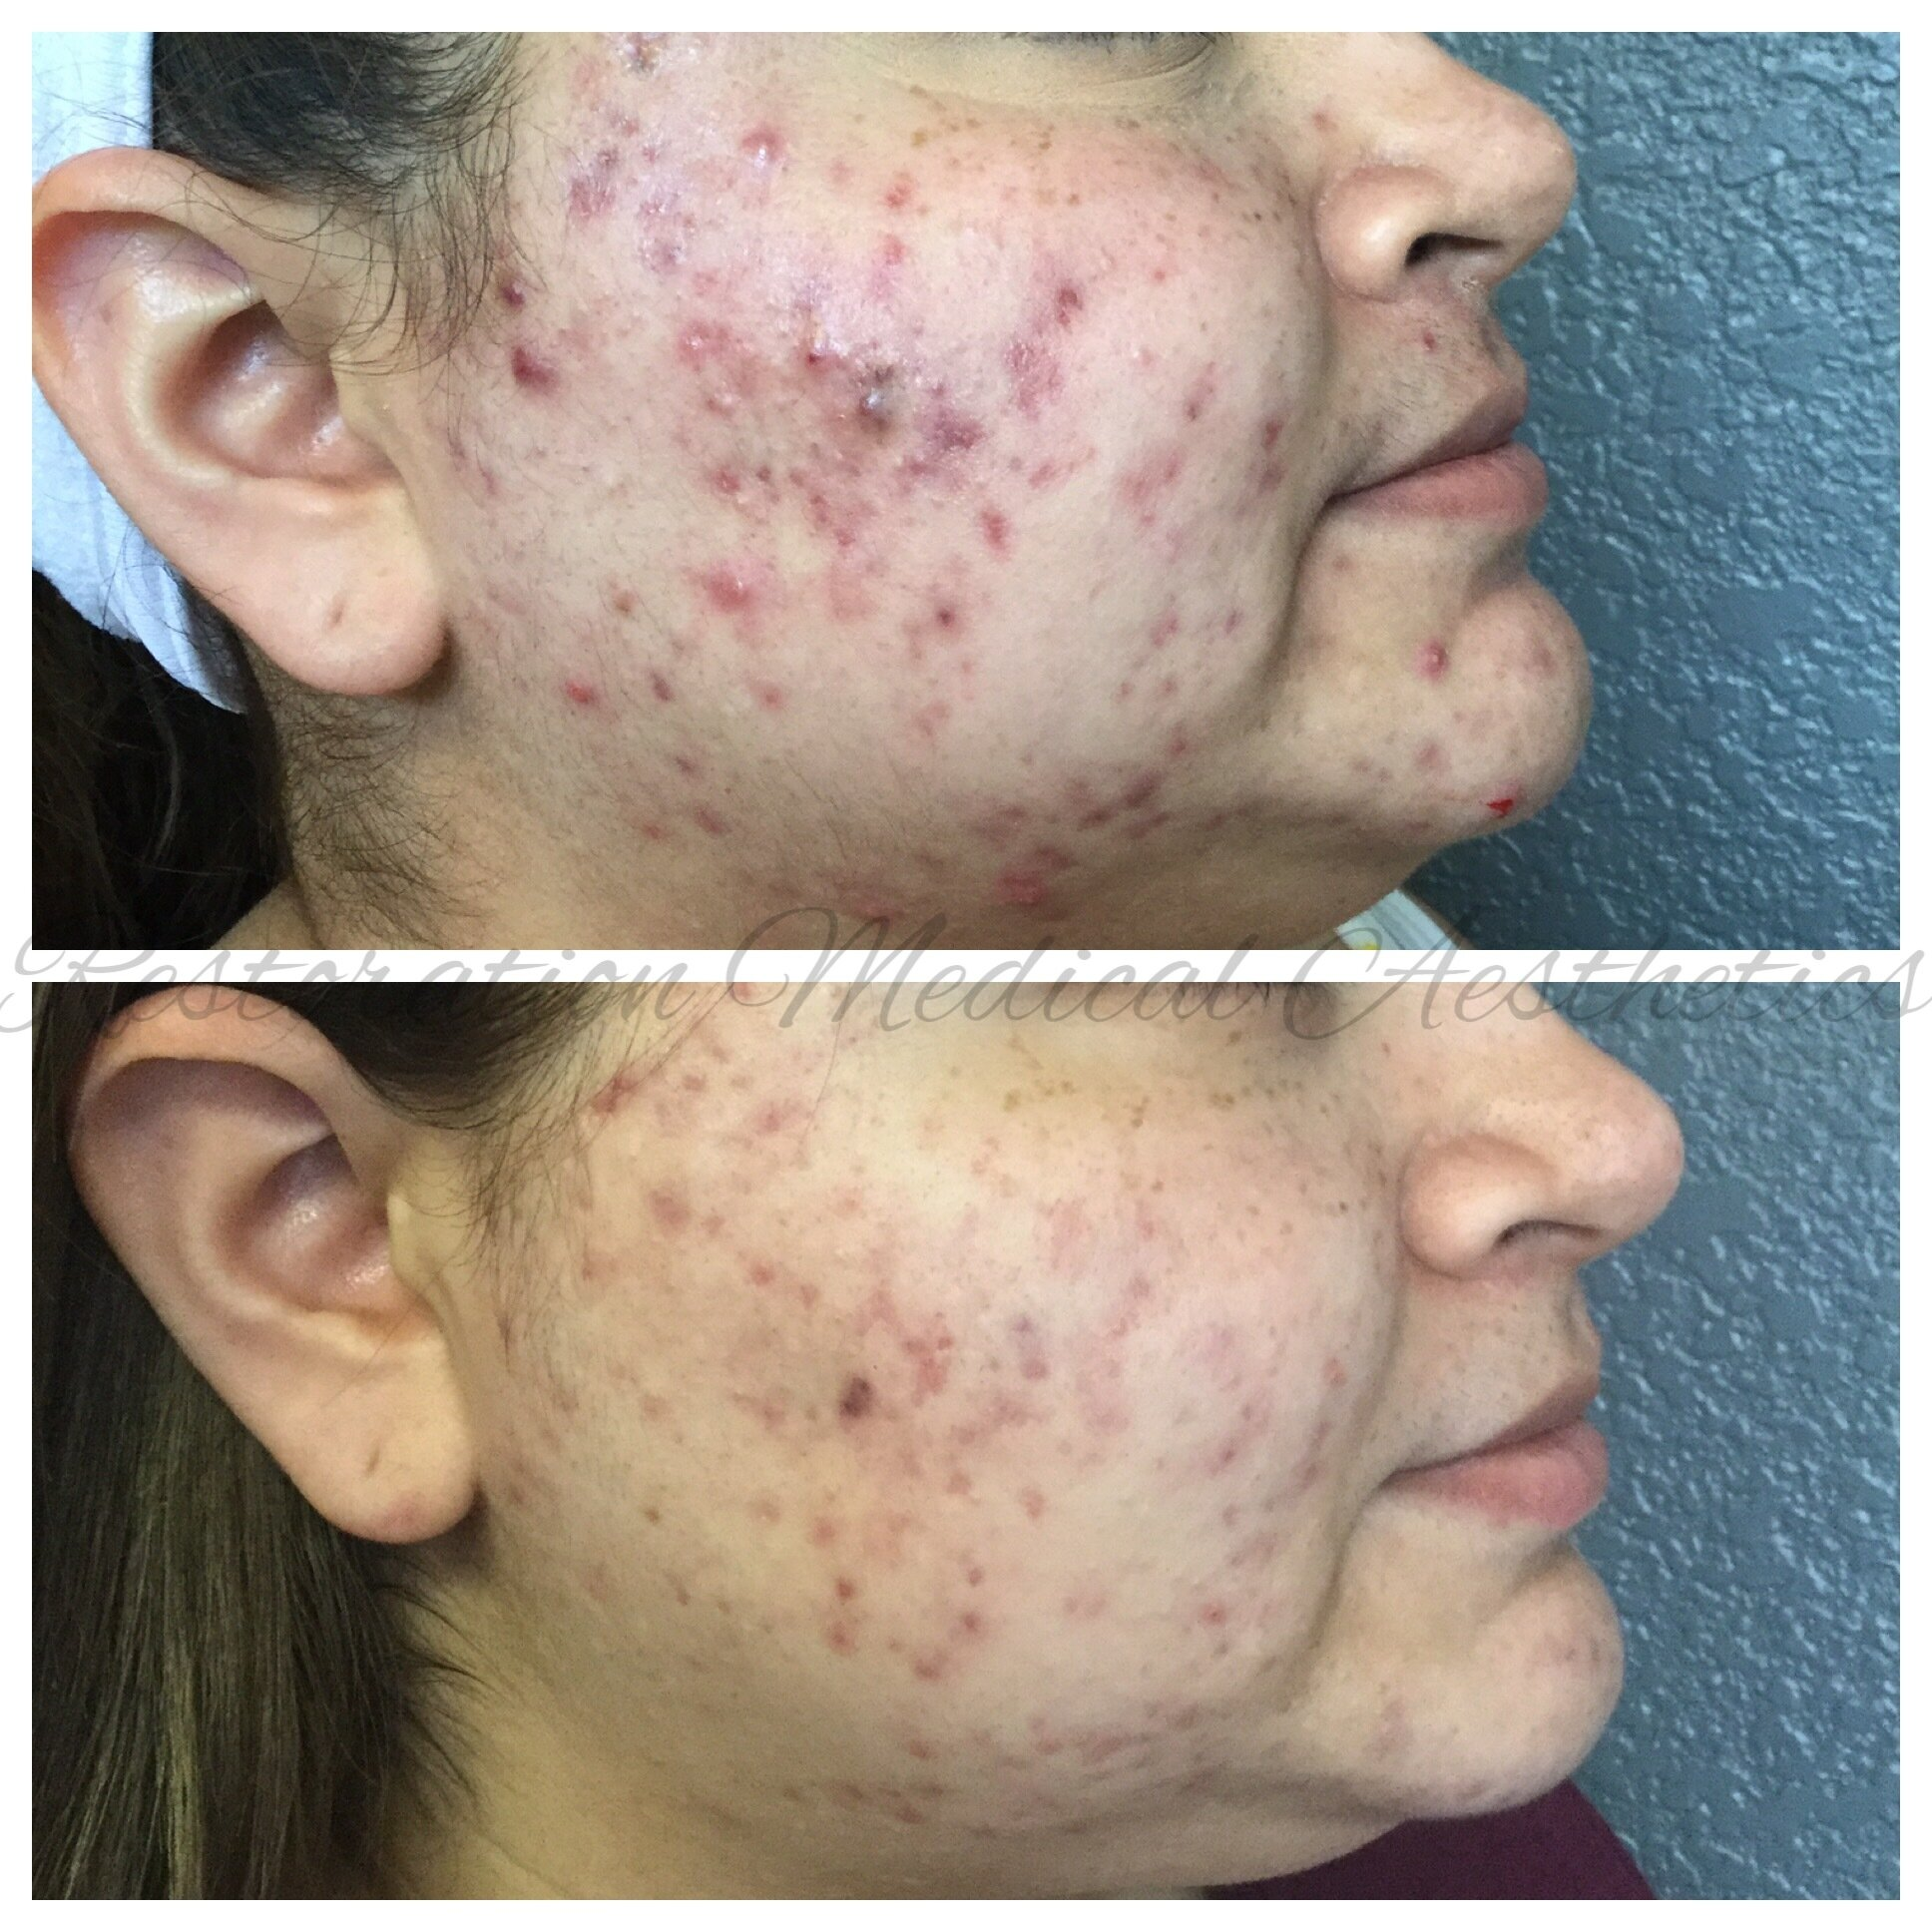 - BEFORE AND 10 WEEKS AFTER 2 TREATMENTS RIGHT SIDE VIEW